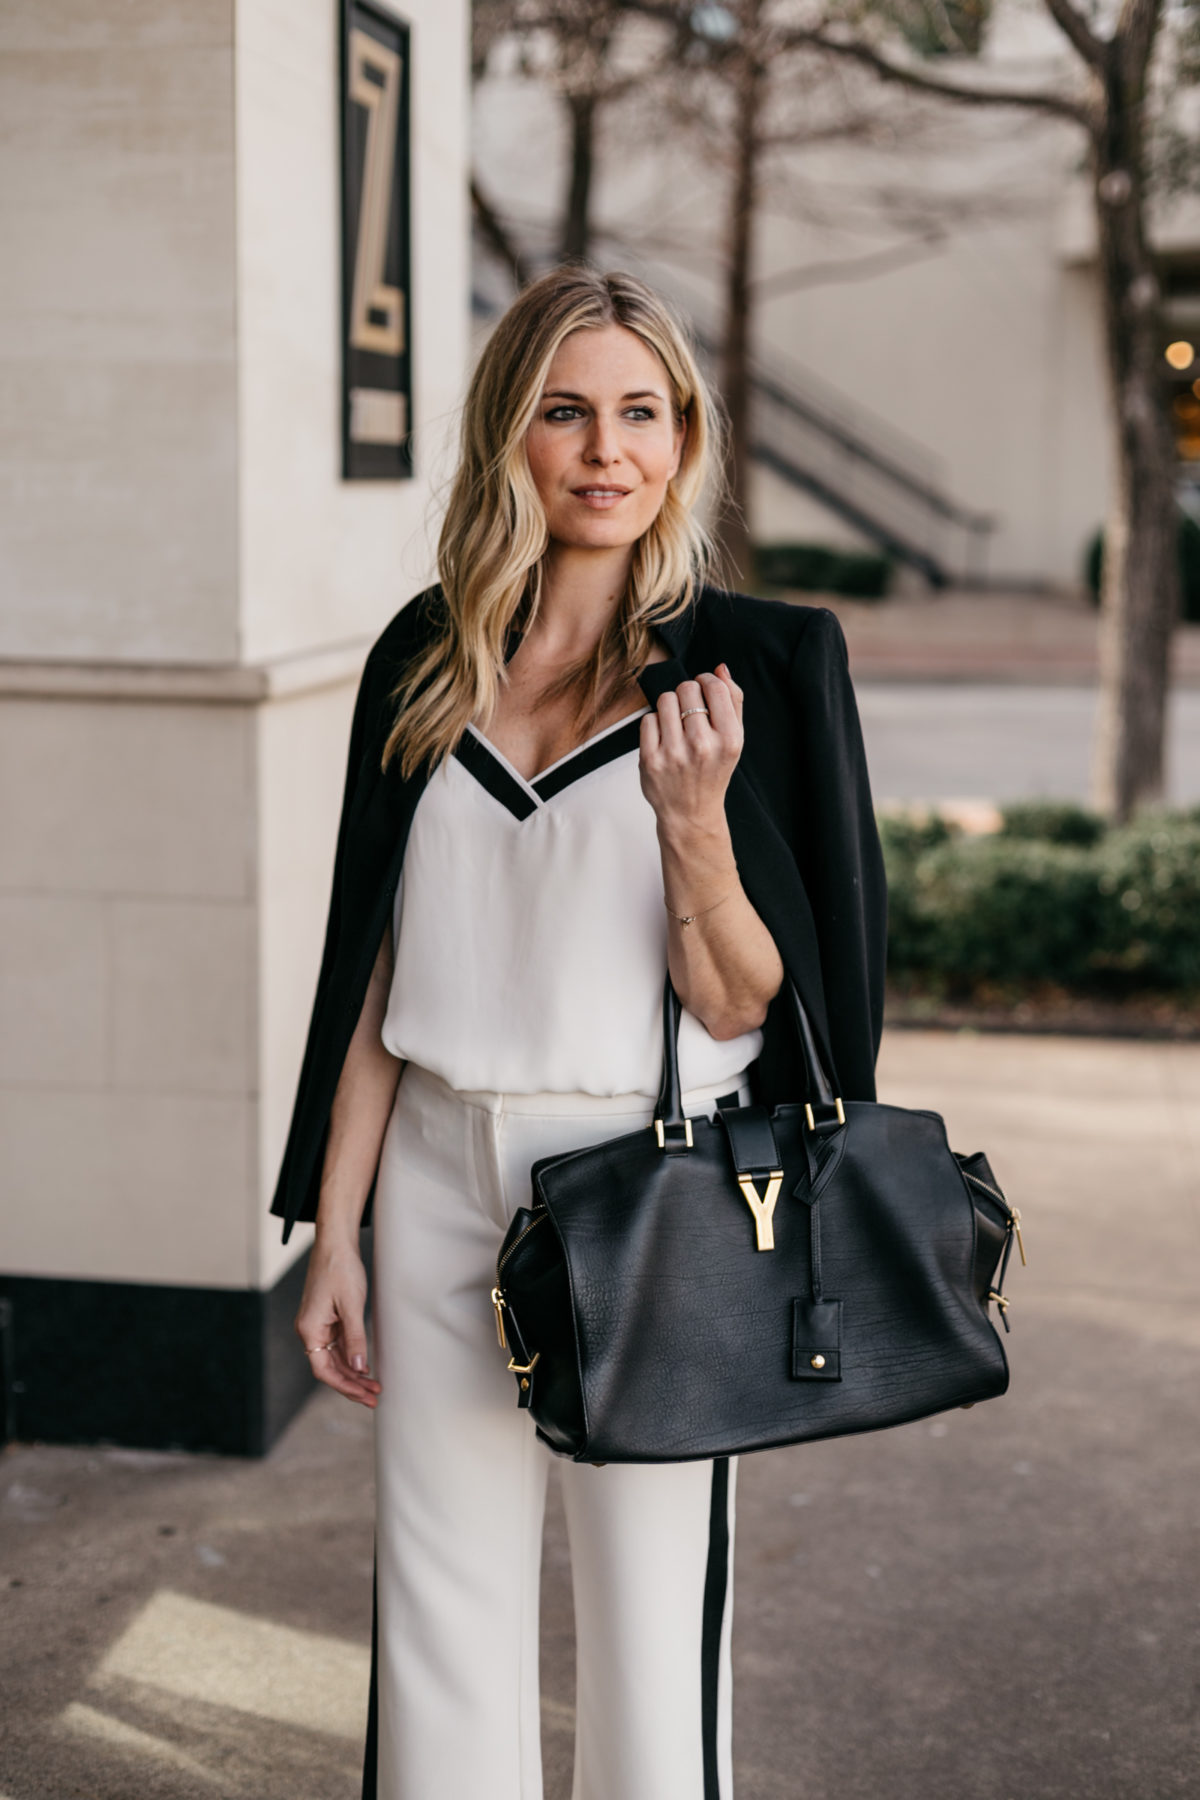 OUTFIT 4  White Work Pants // White with Black Sleeveless Camisole // Black Fitted Blazer // Black Work Tote // Black Suede Sandals